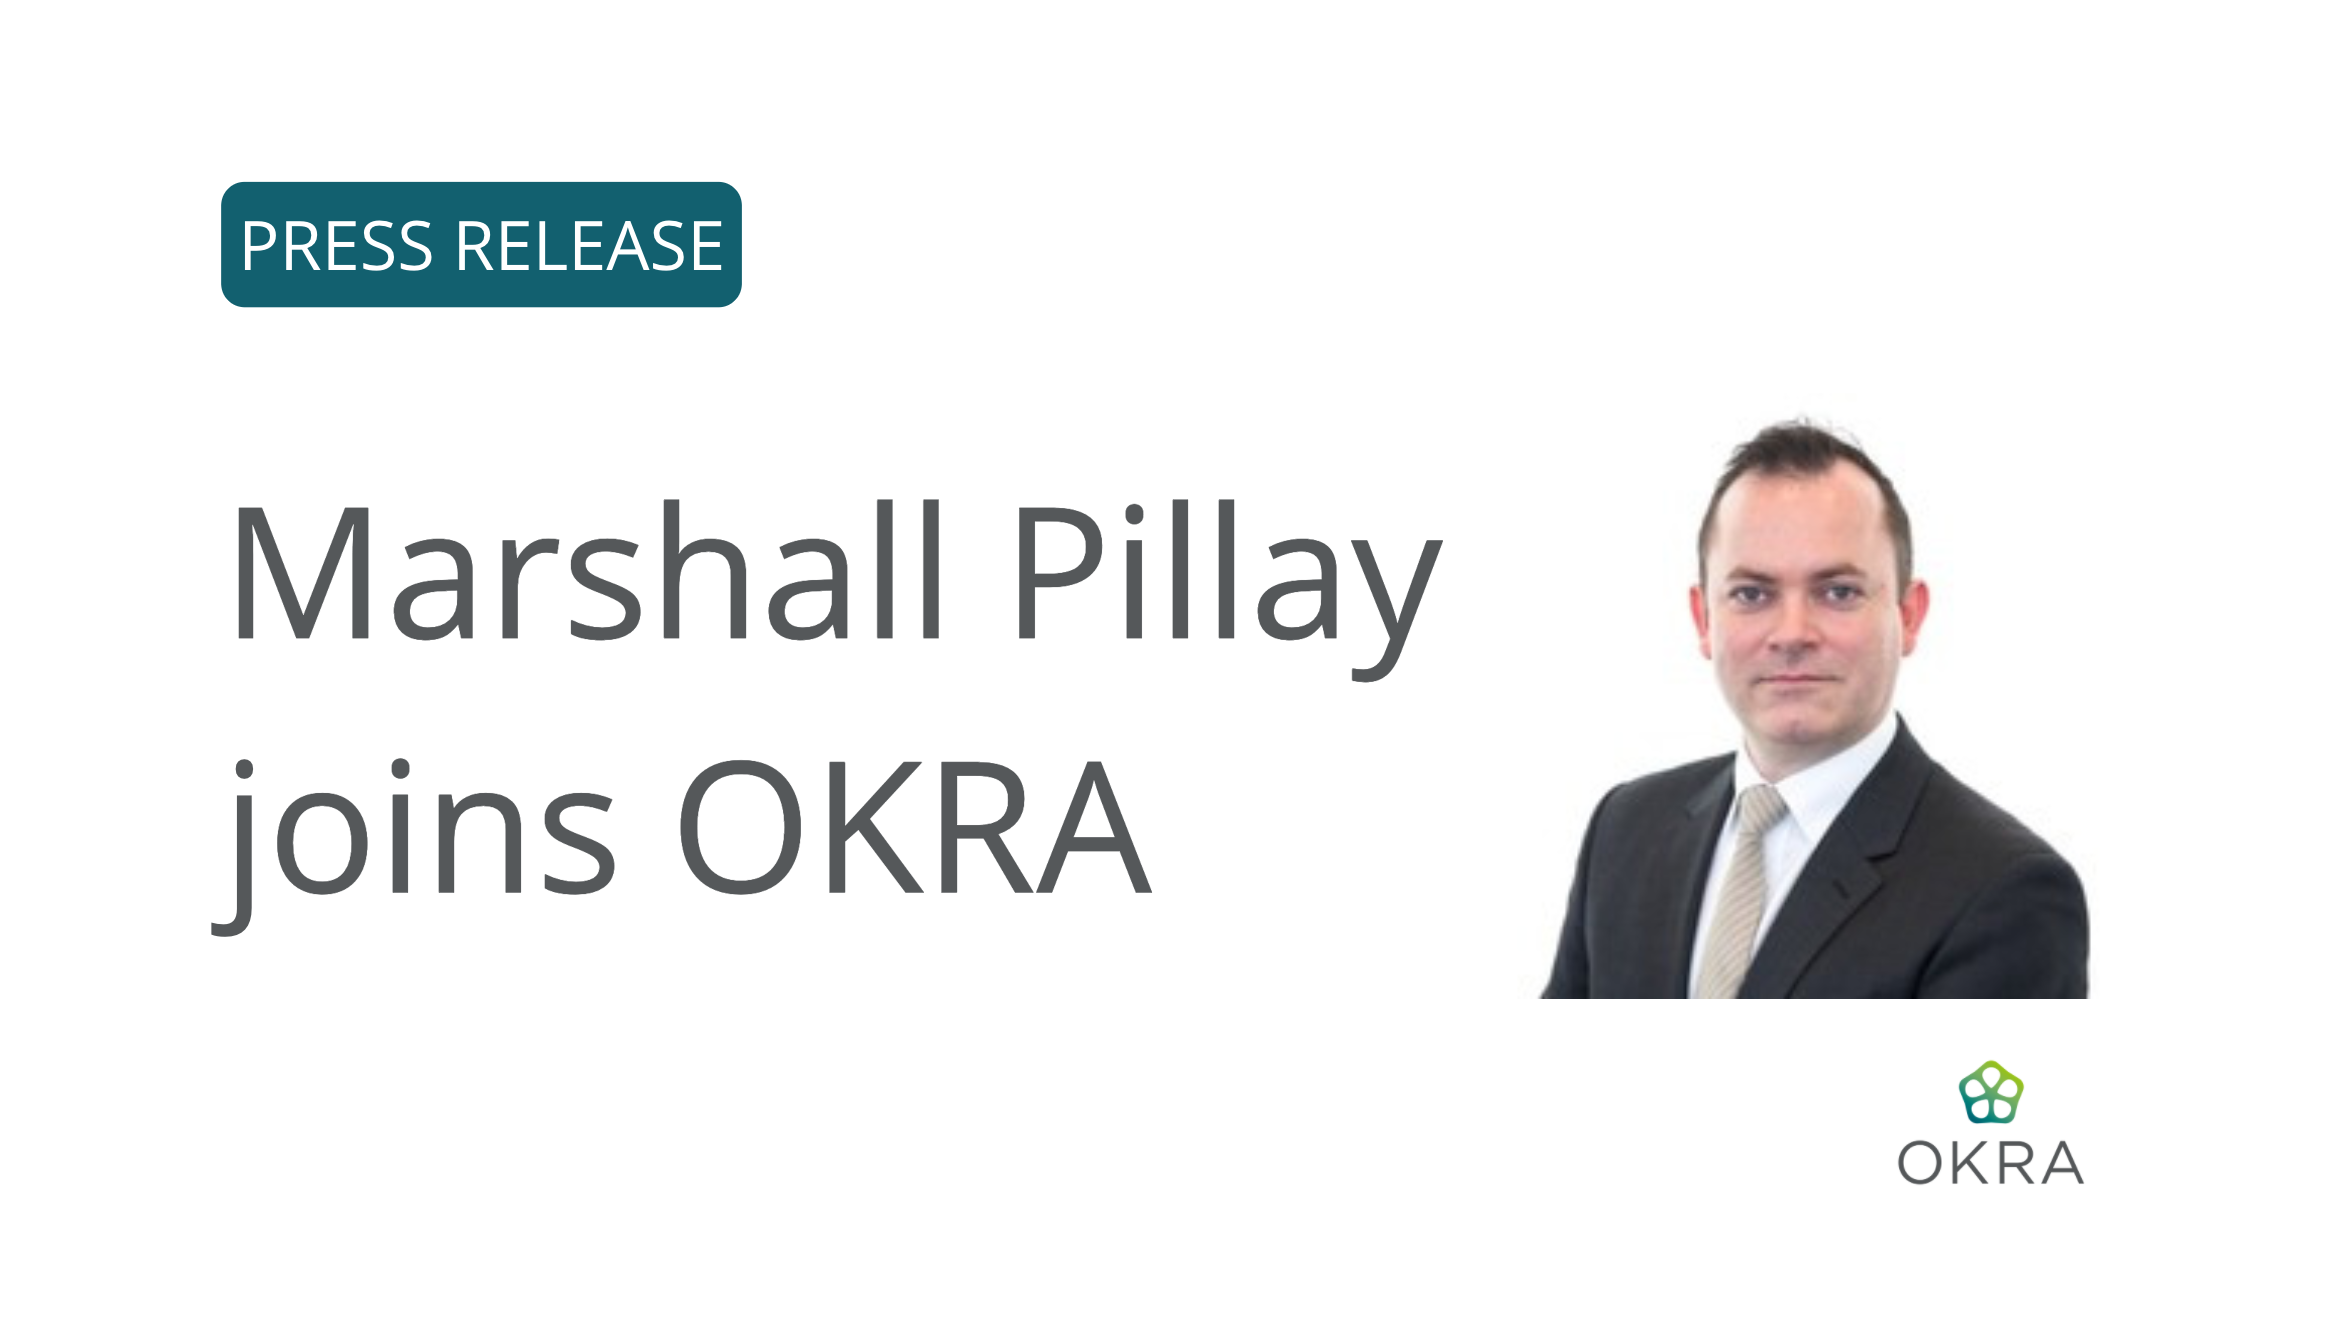 Marshall Pillay joins OKRA